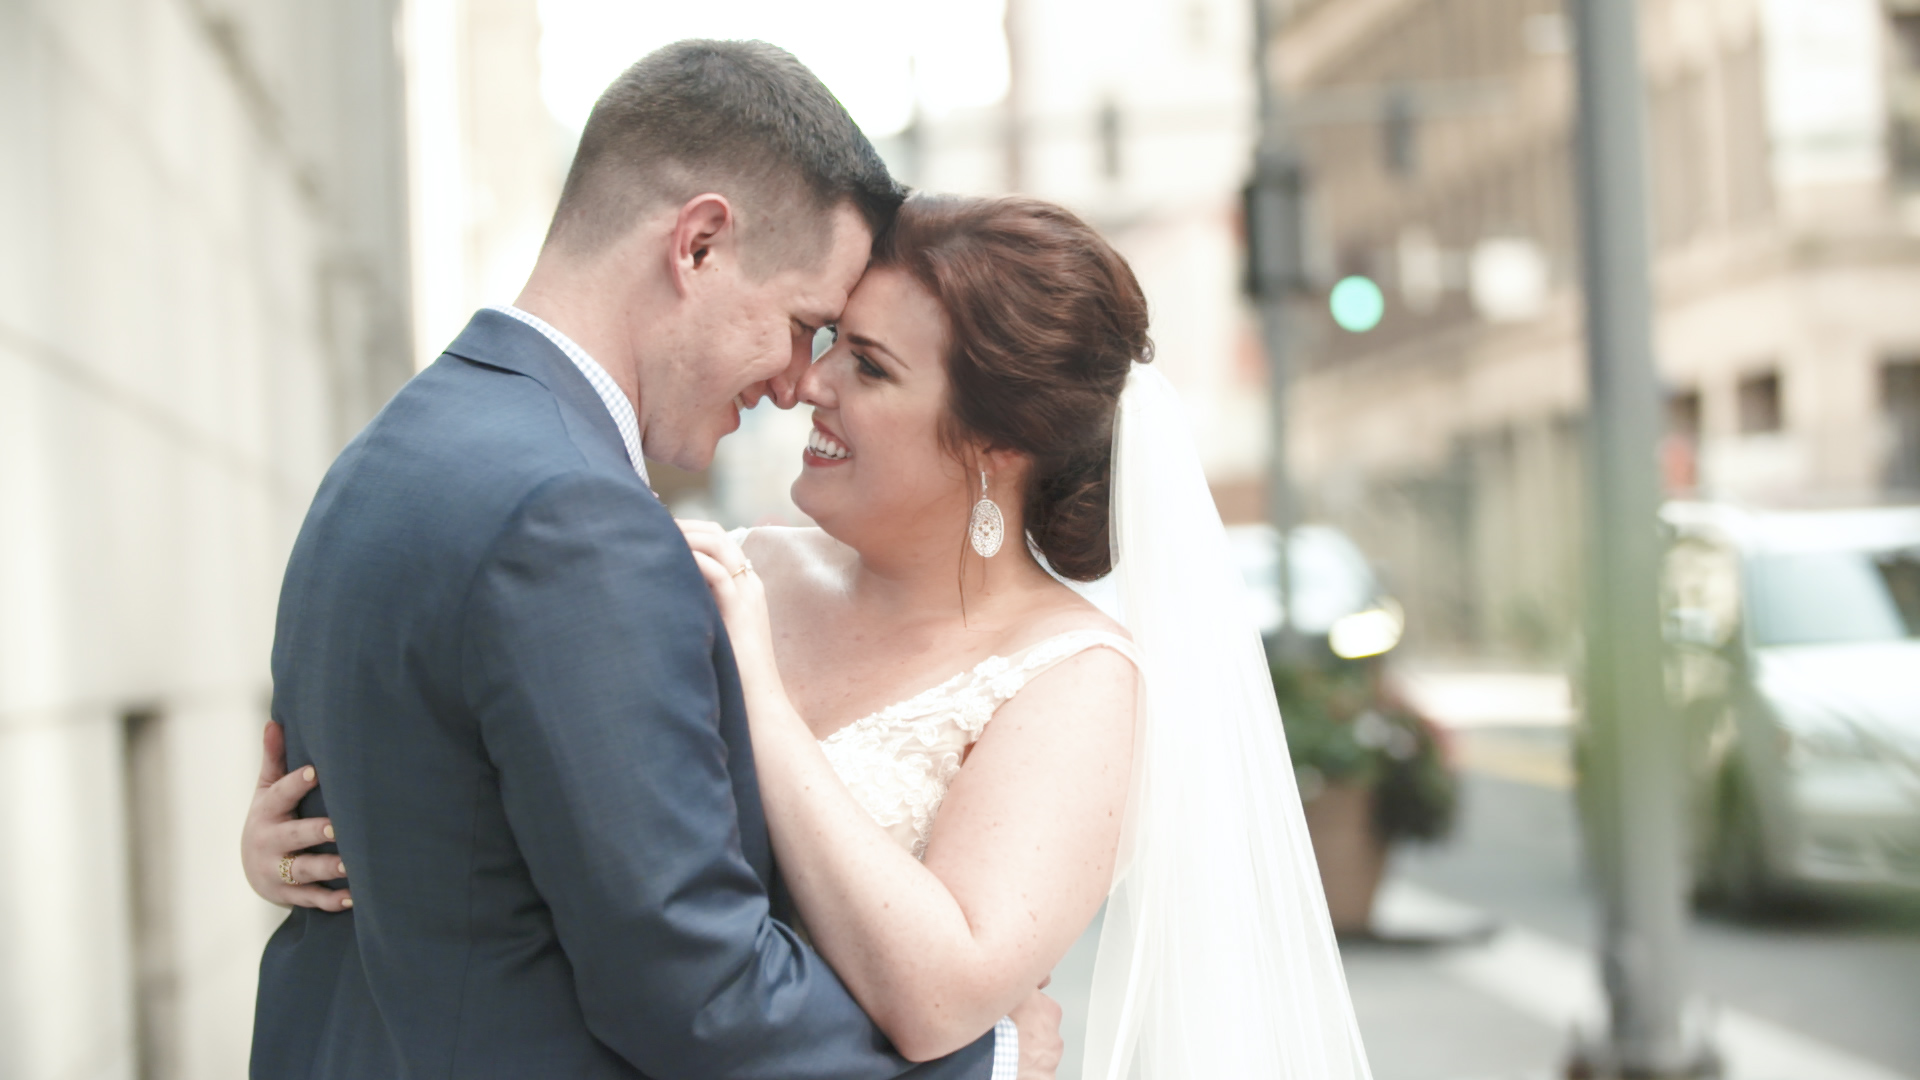 Alex + Scott | Pittsburgh, Pennsylvania | Hotel Monaco